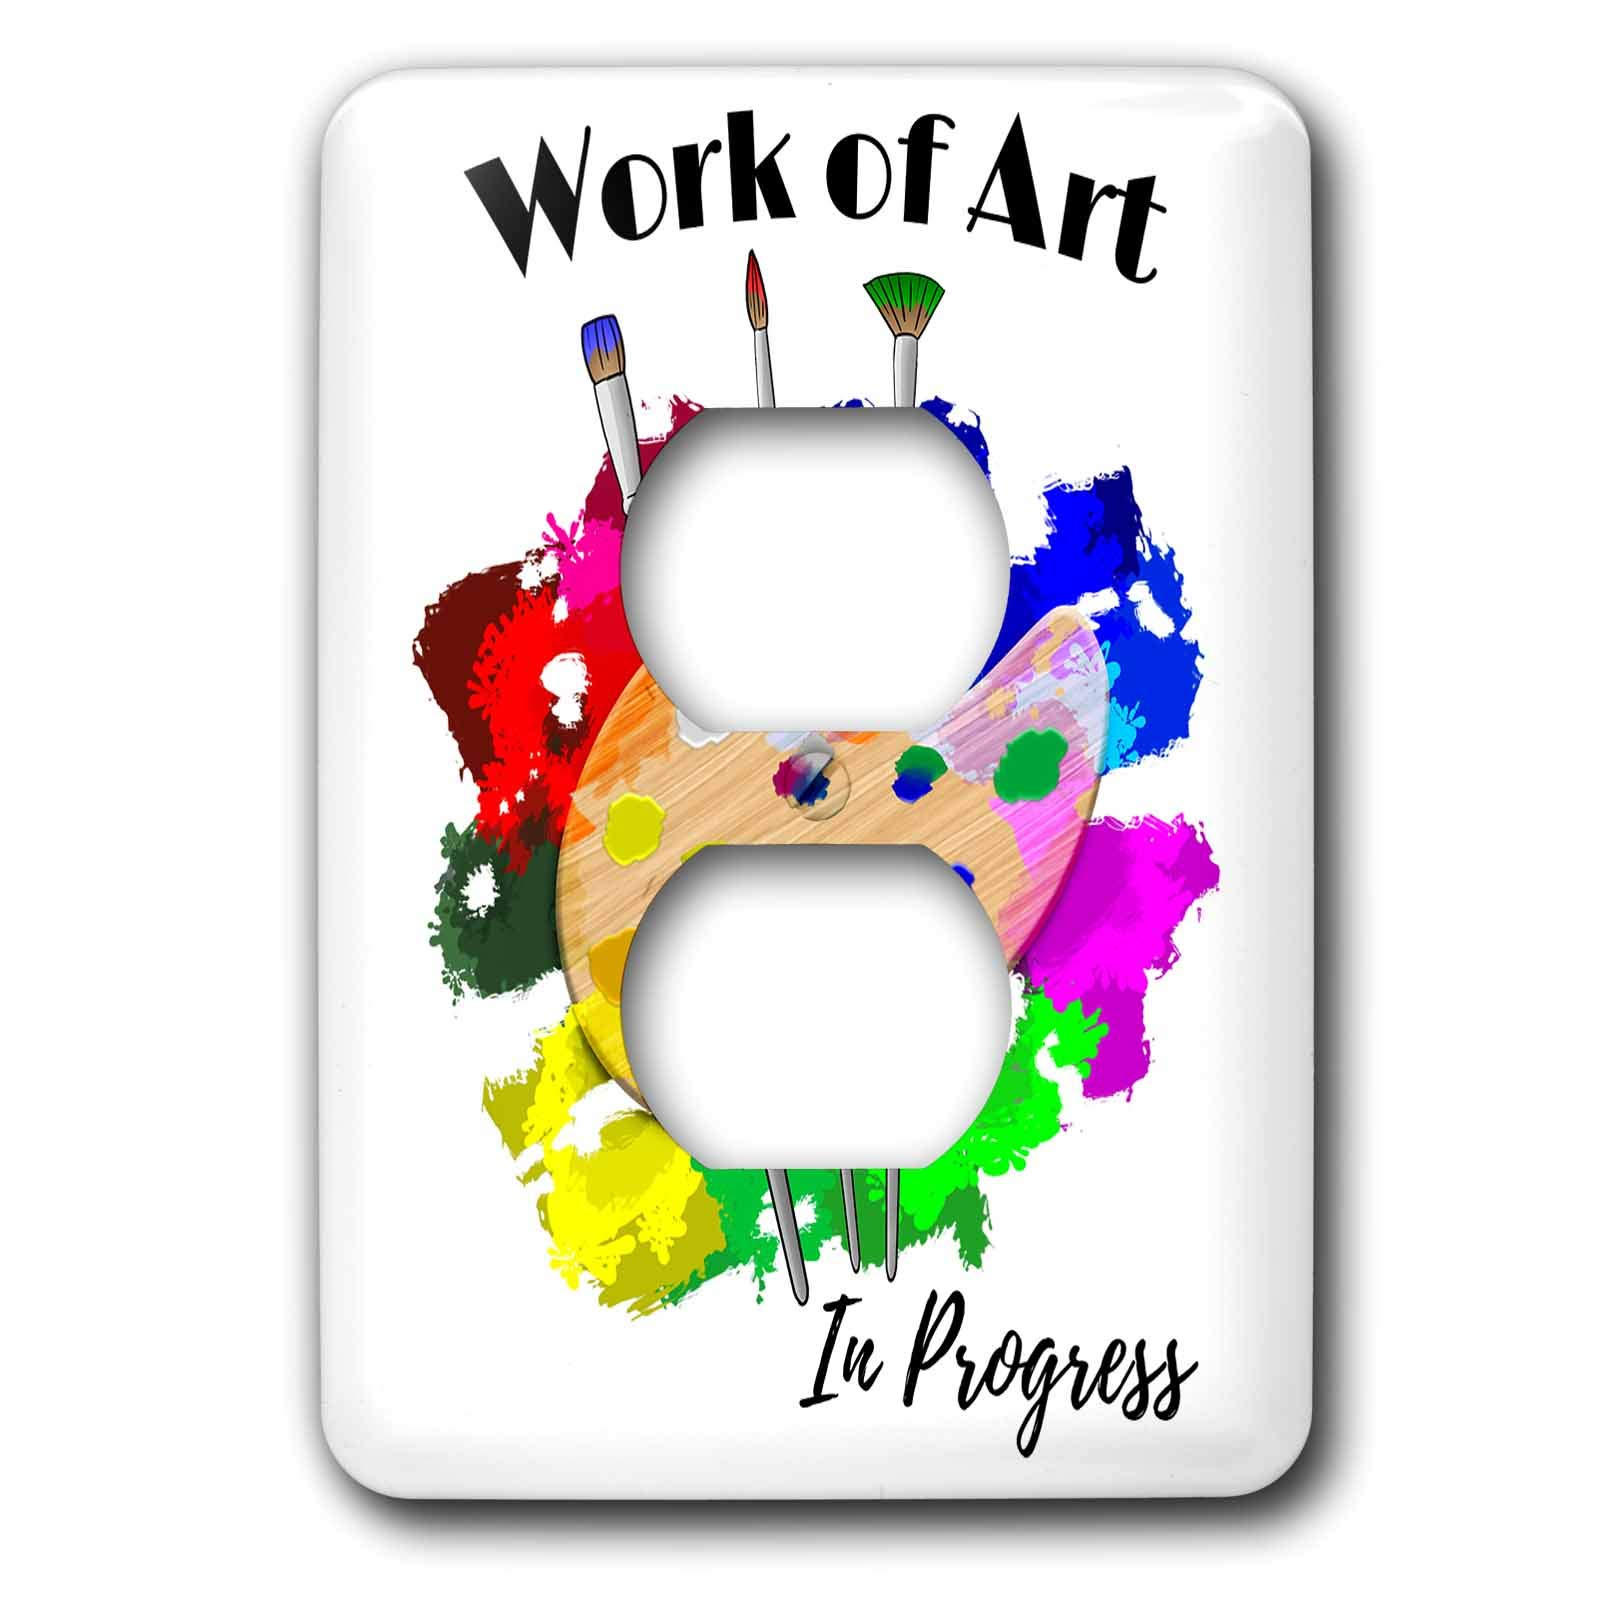 3dRose MacDonald Creative Studios – Artist - Inspirational design for artist, Work of Art in Progress. - Light Switch Covers - 2 plug outlet cover (lsp_291916_6)